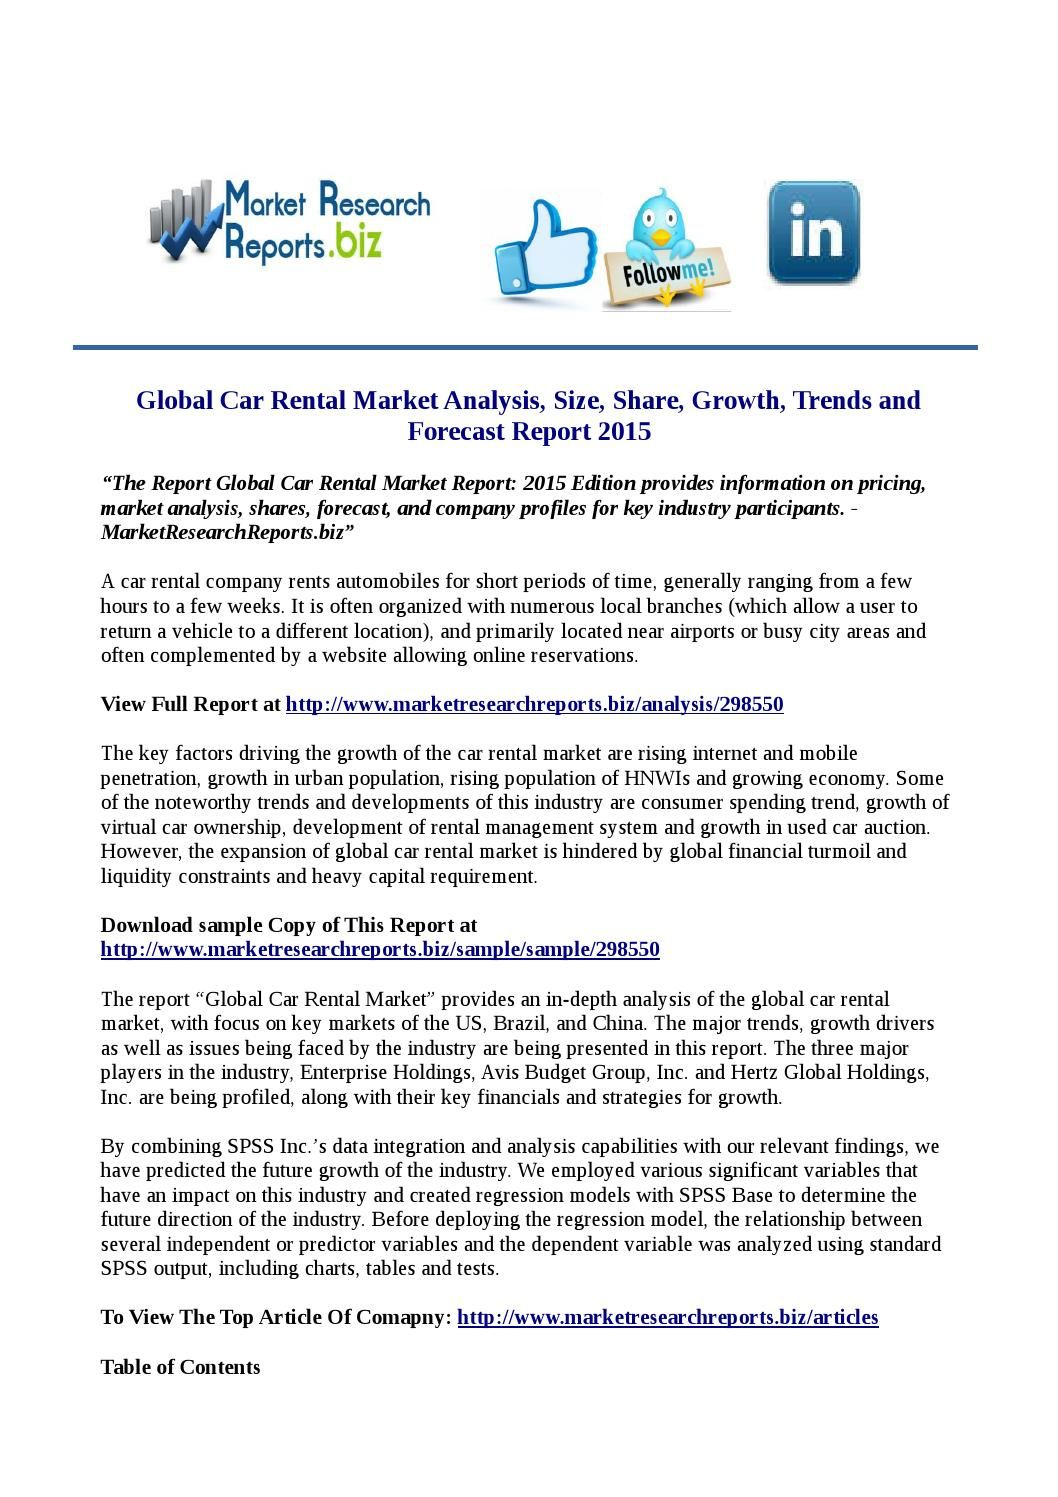 Global Car Rental Market Research Report   Company Profile